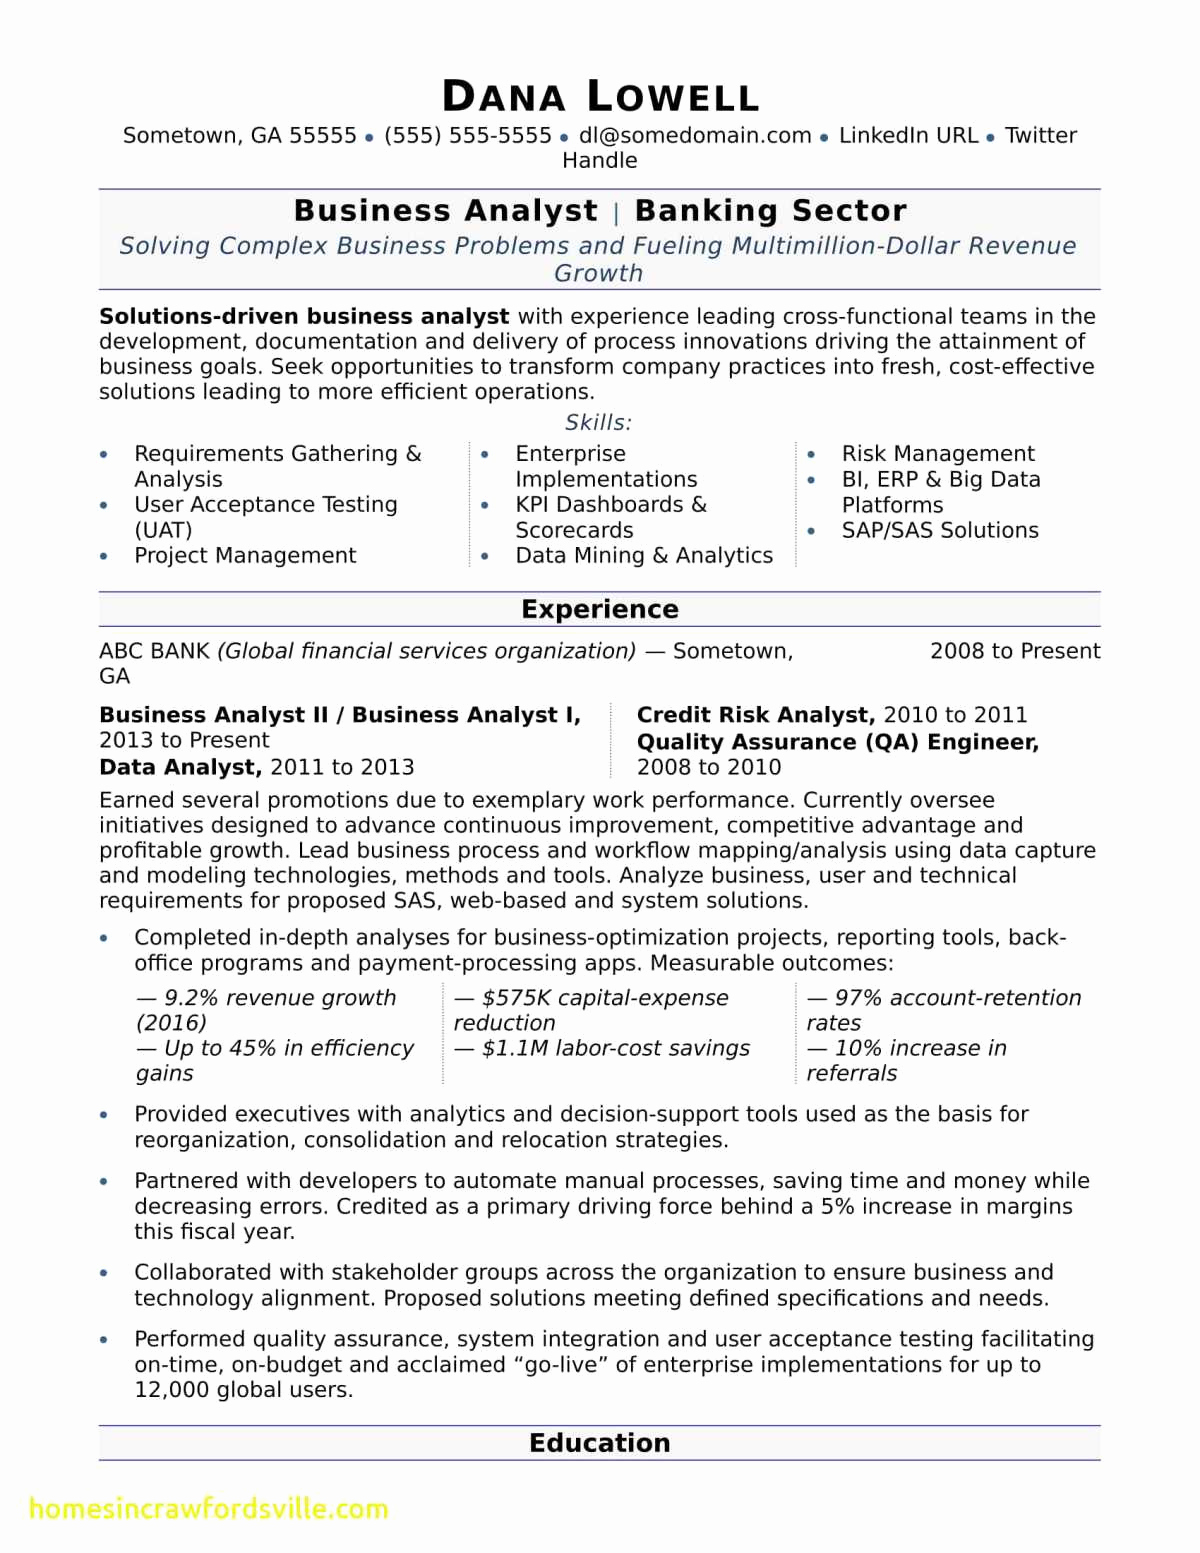 Optimal Resume Mdc - Optimal Resume Mdc Optimal Resume Wyotech Picture Best solutions